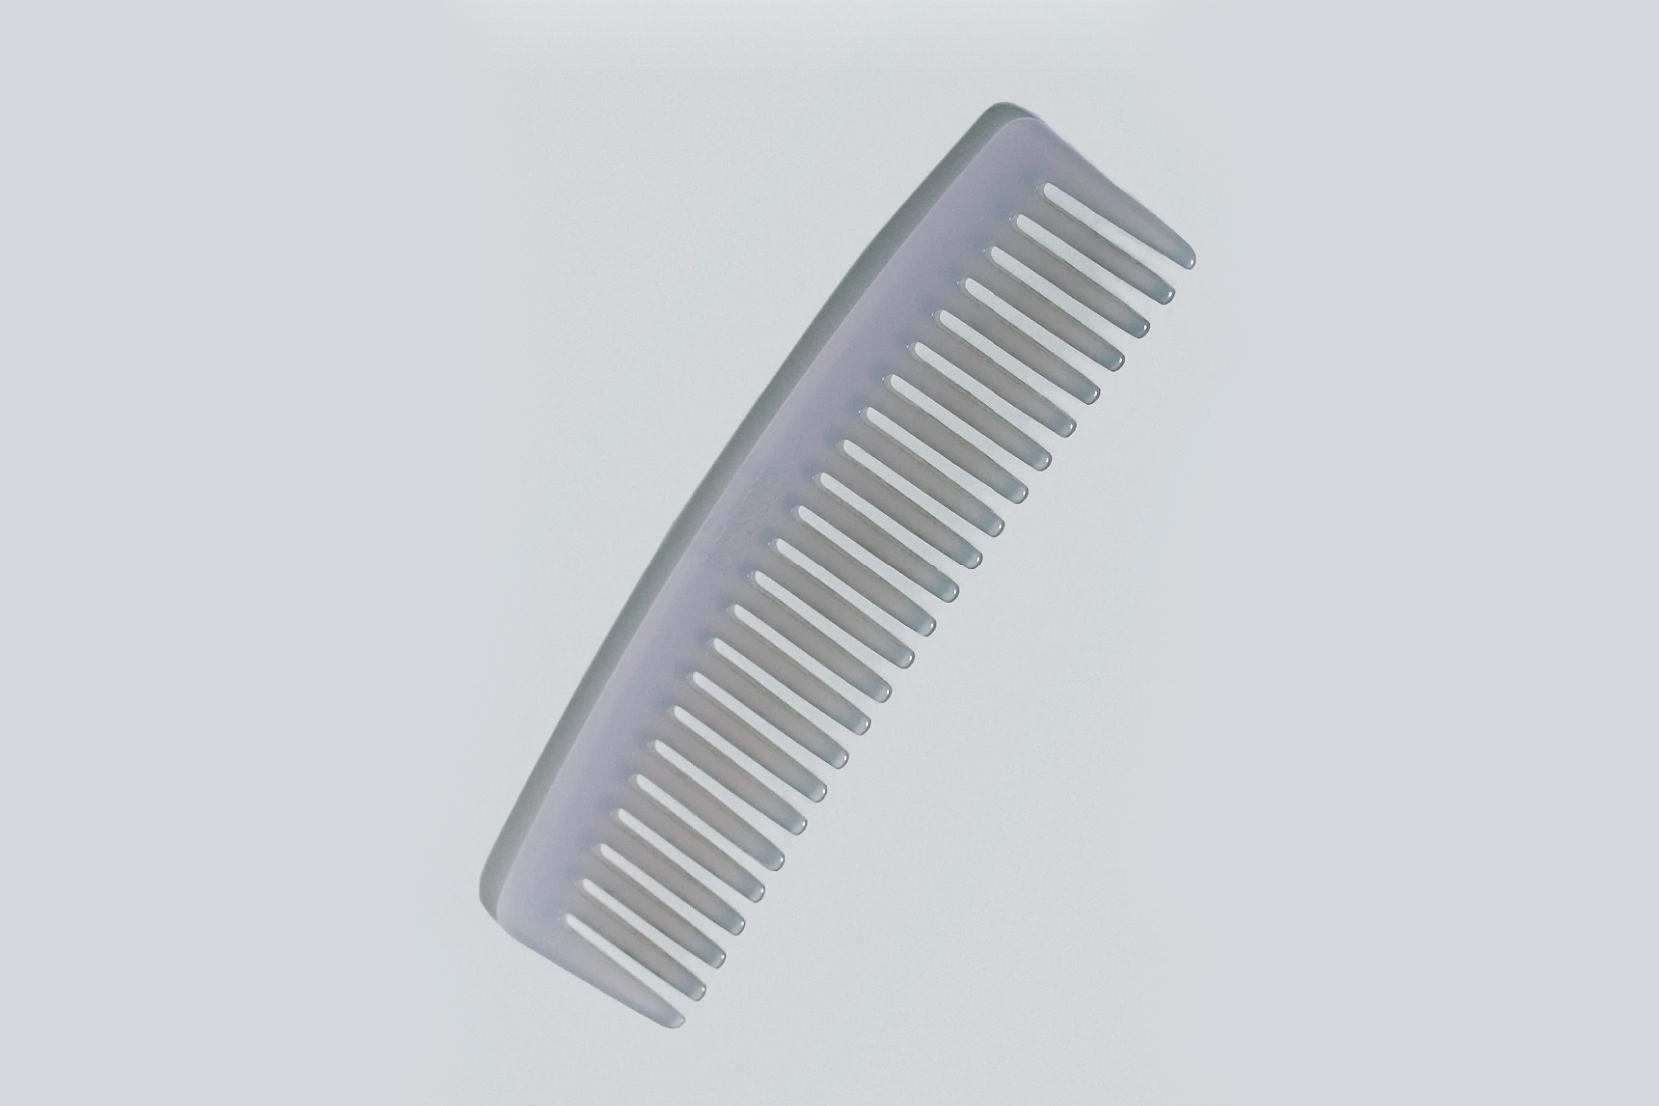 eco-friendly combs brushes hair care